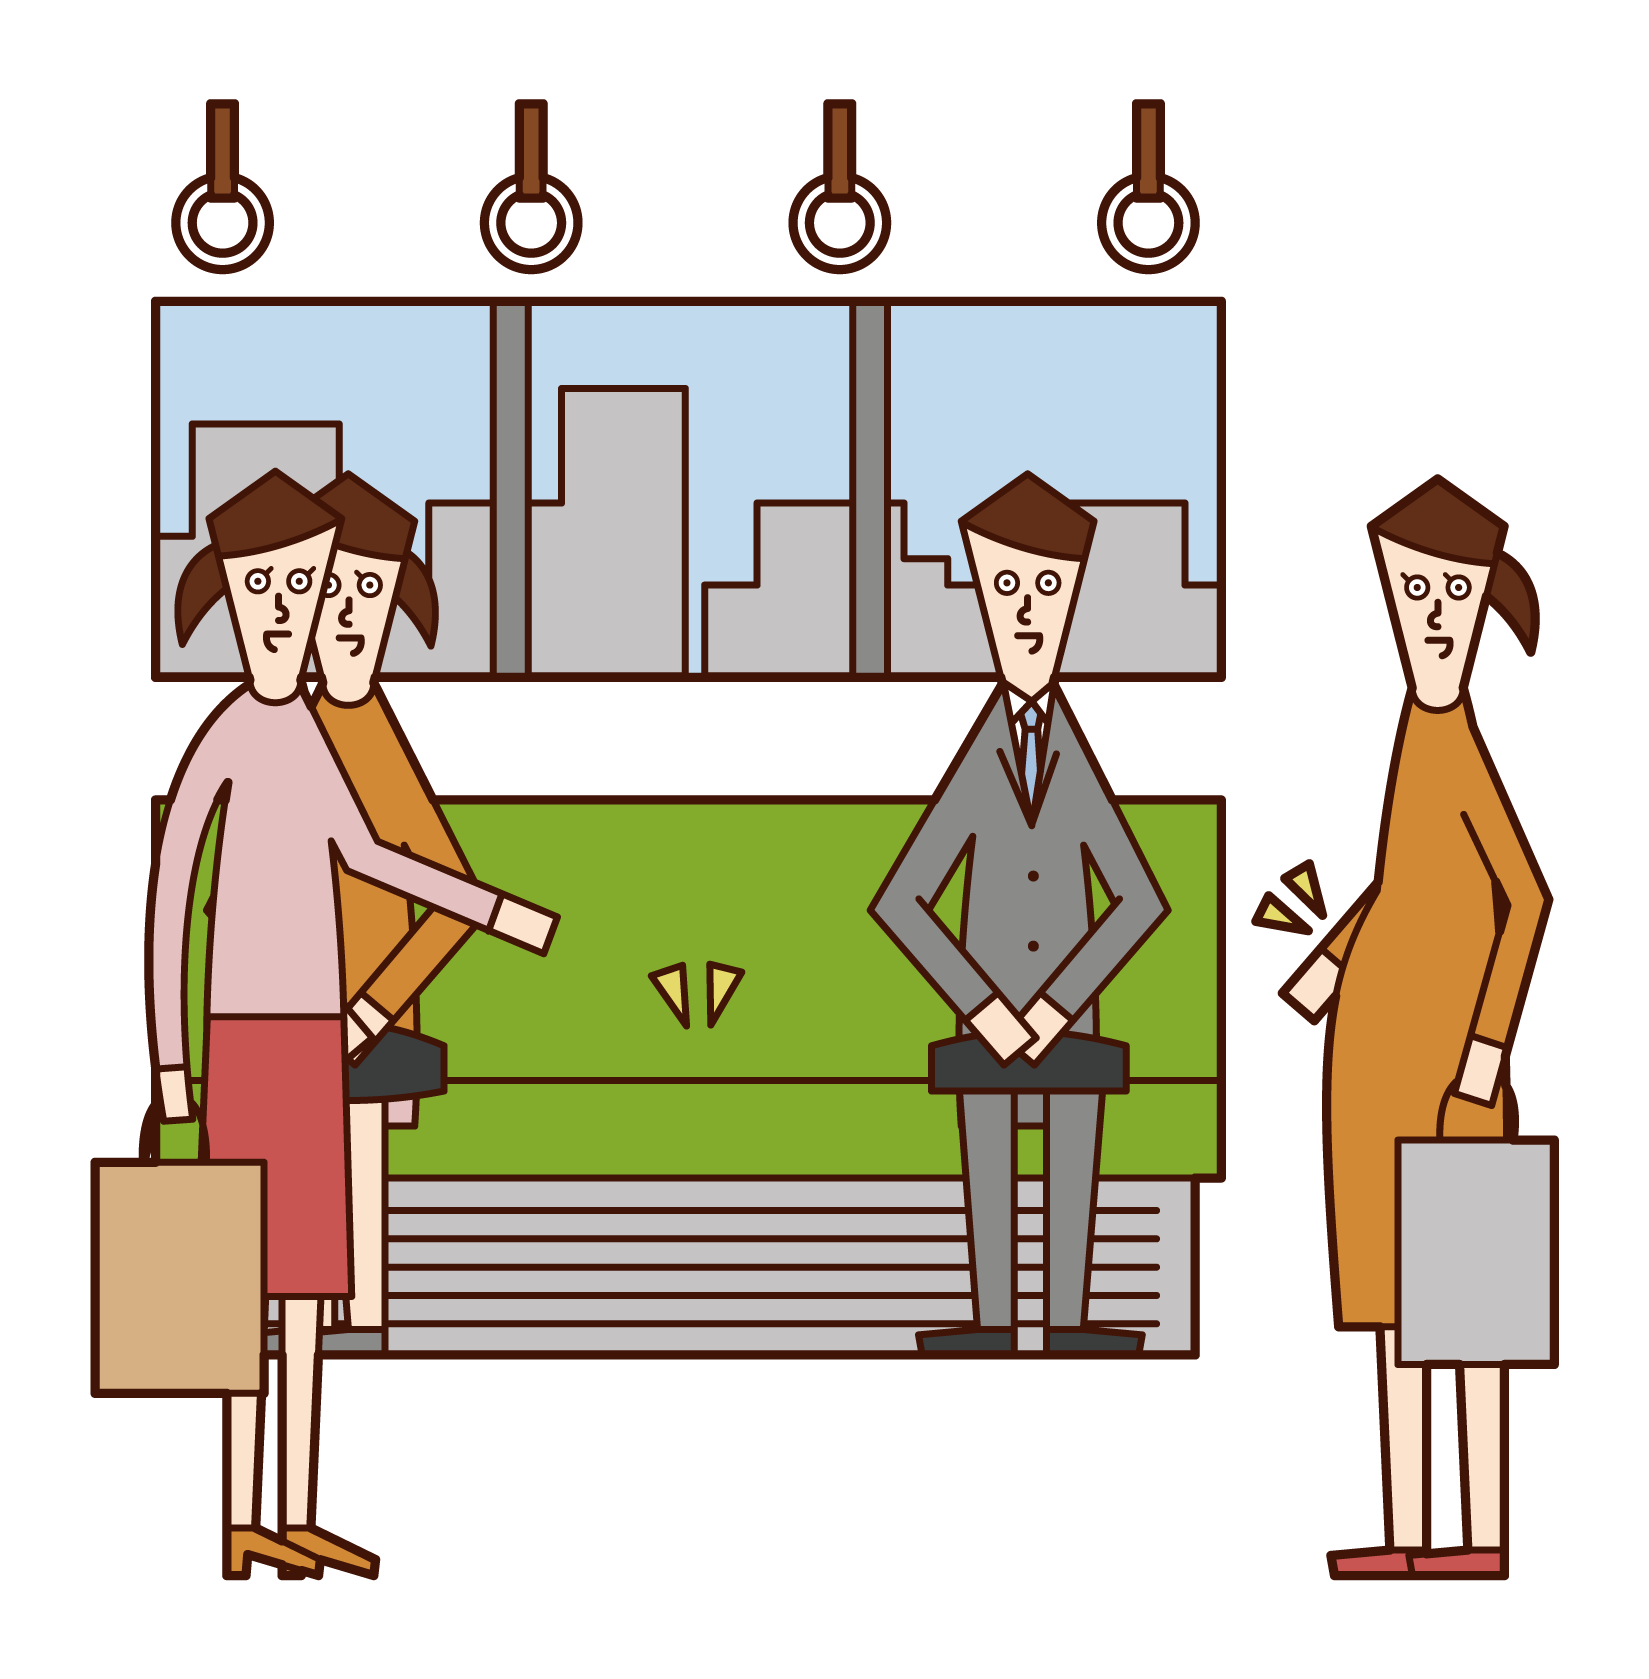 Illustration of a woman giving up her seat to a pregnant woman on a train